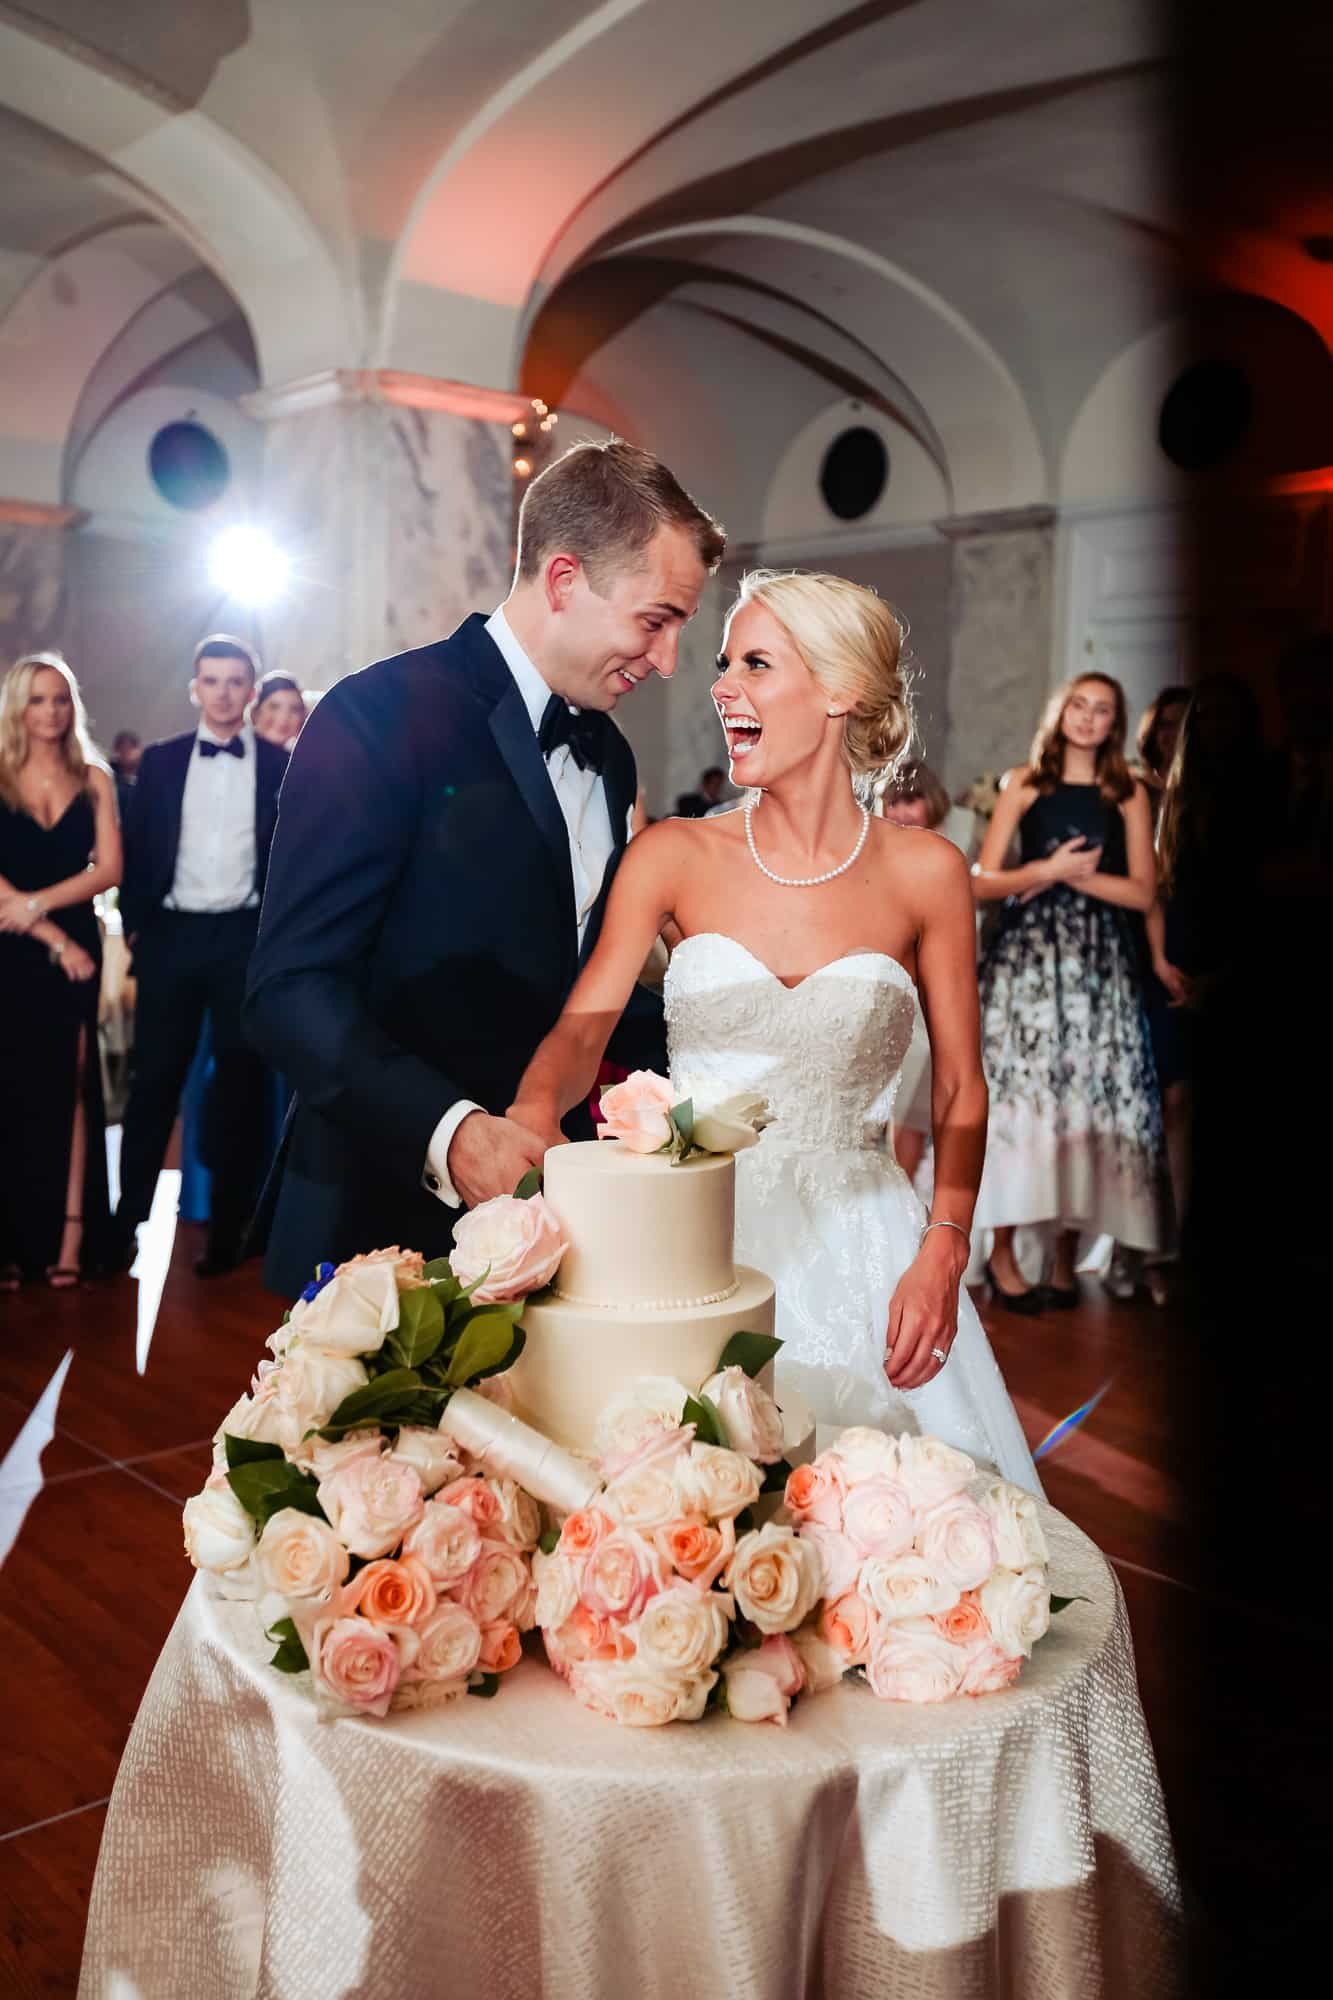 Ritz Carlton Philadelphia Wedding|bride and groom laughing while cutting wedding cake